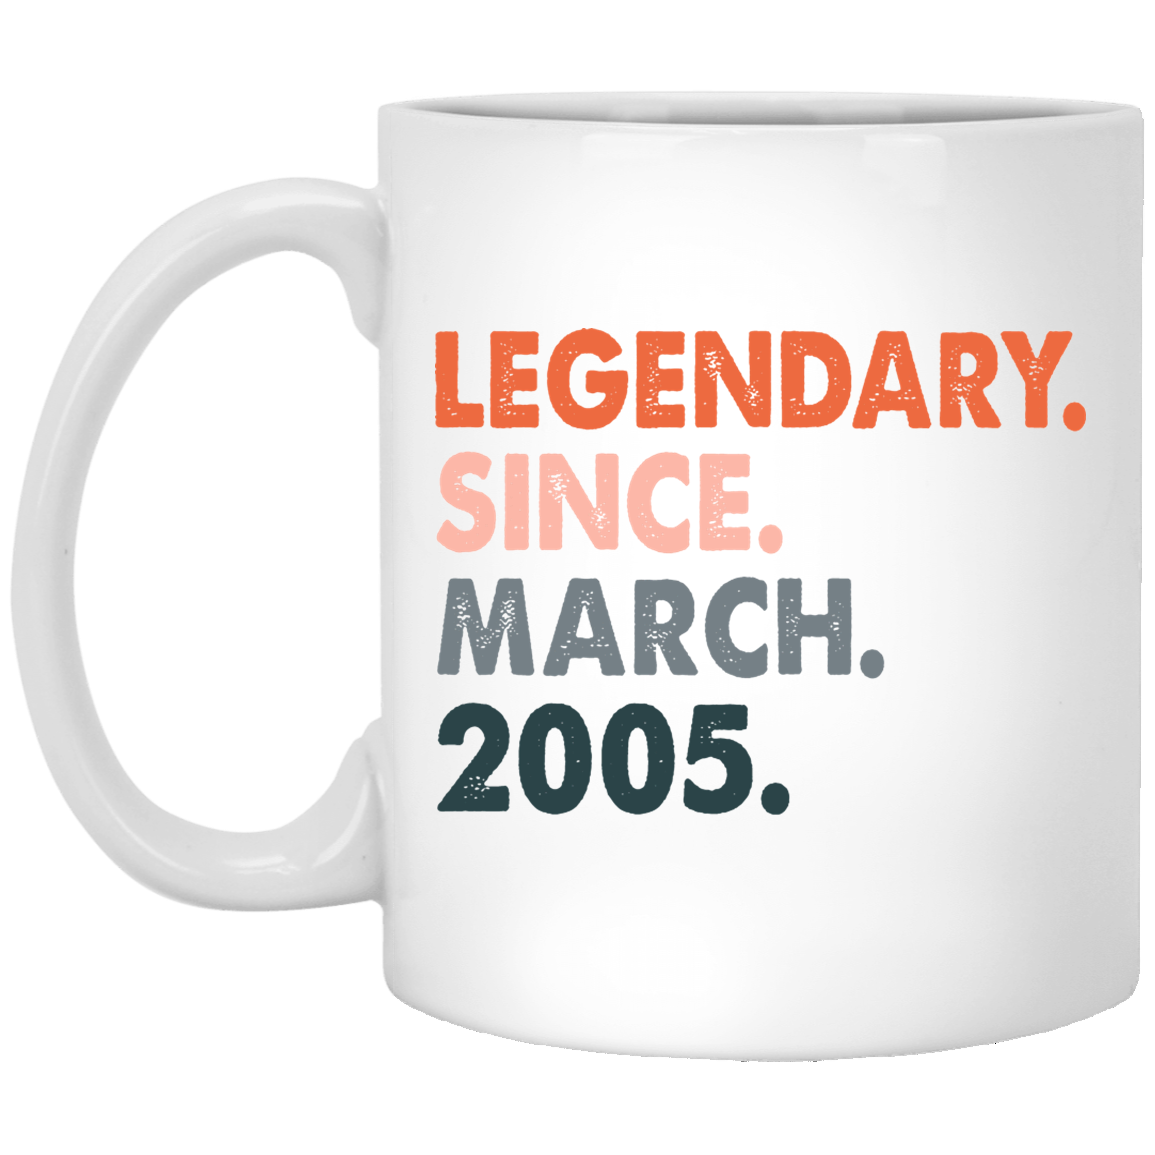 16th-Birthday-Ideas-for-Women-and-Men-Legendary-Since-March-2005 Funny Quotes Coffee Mug 99promocode